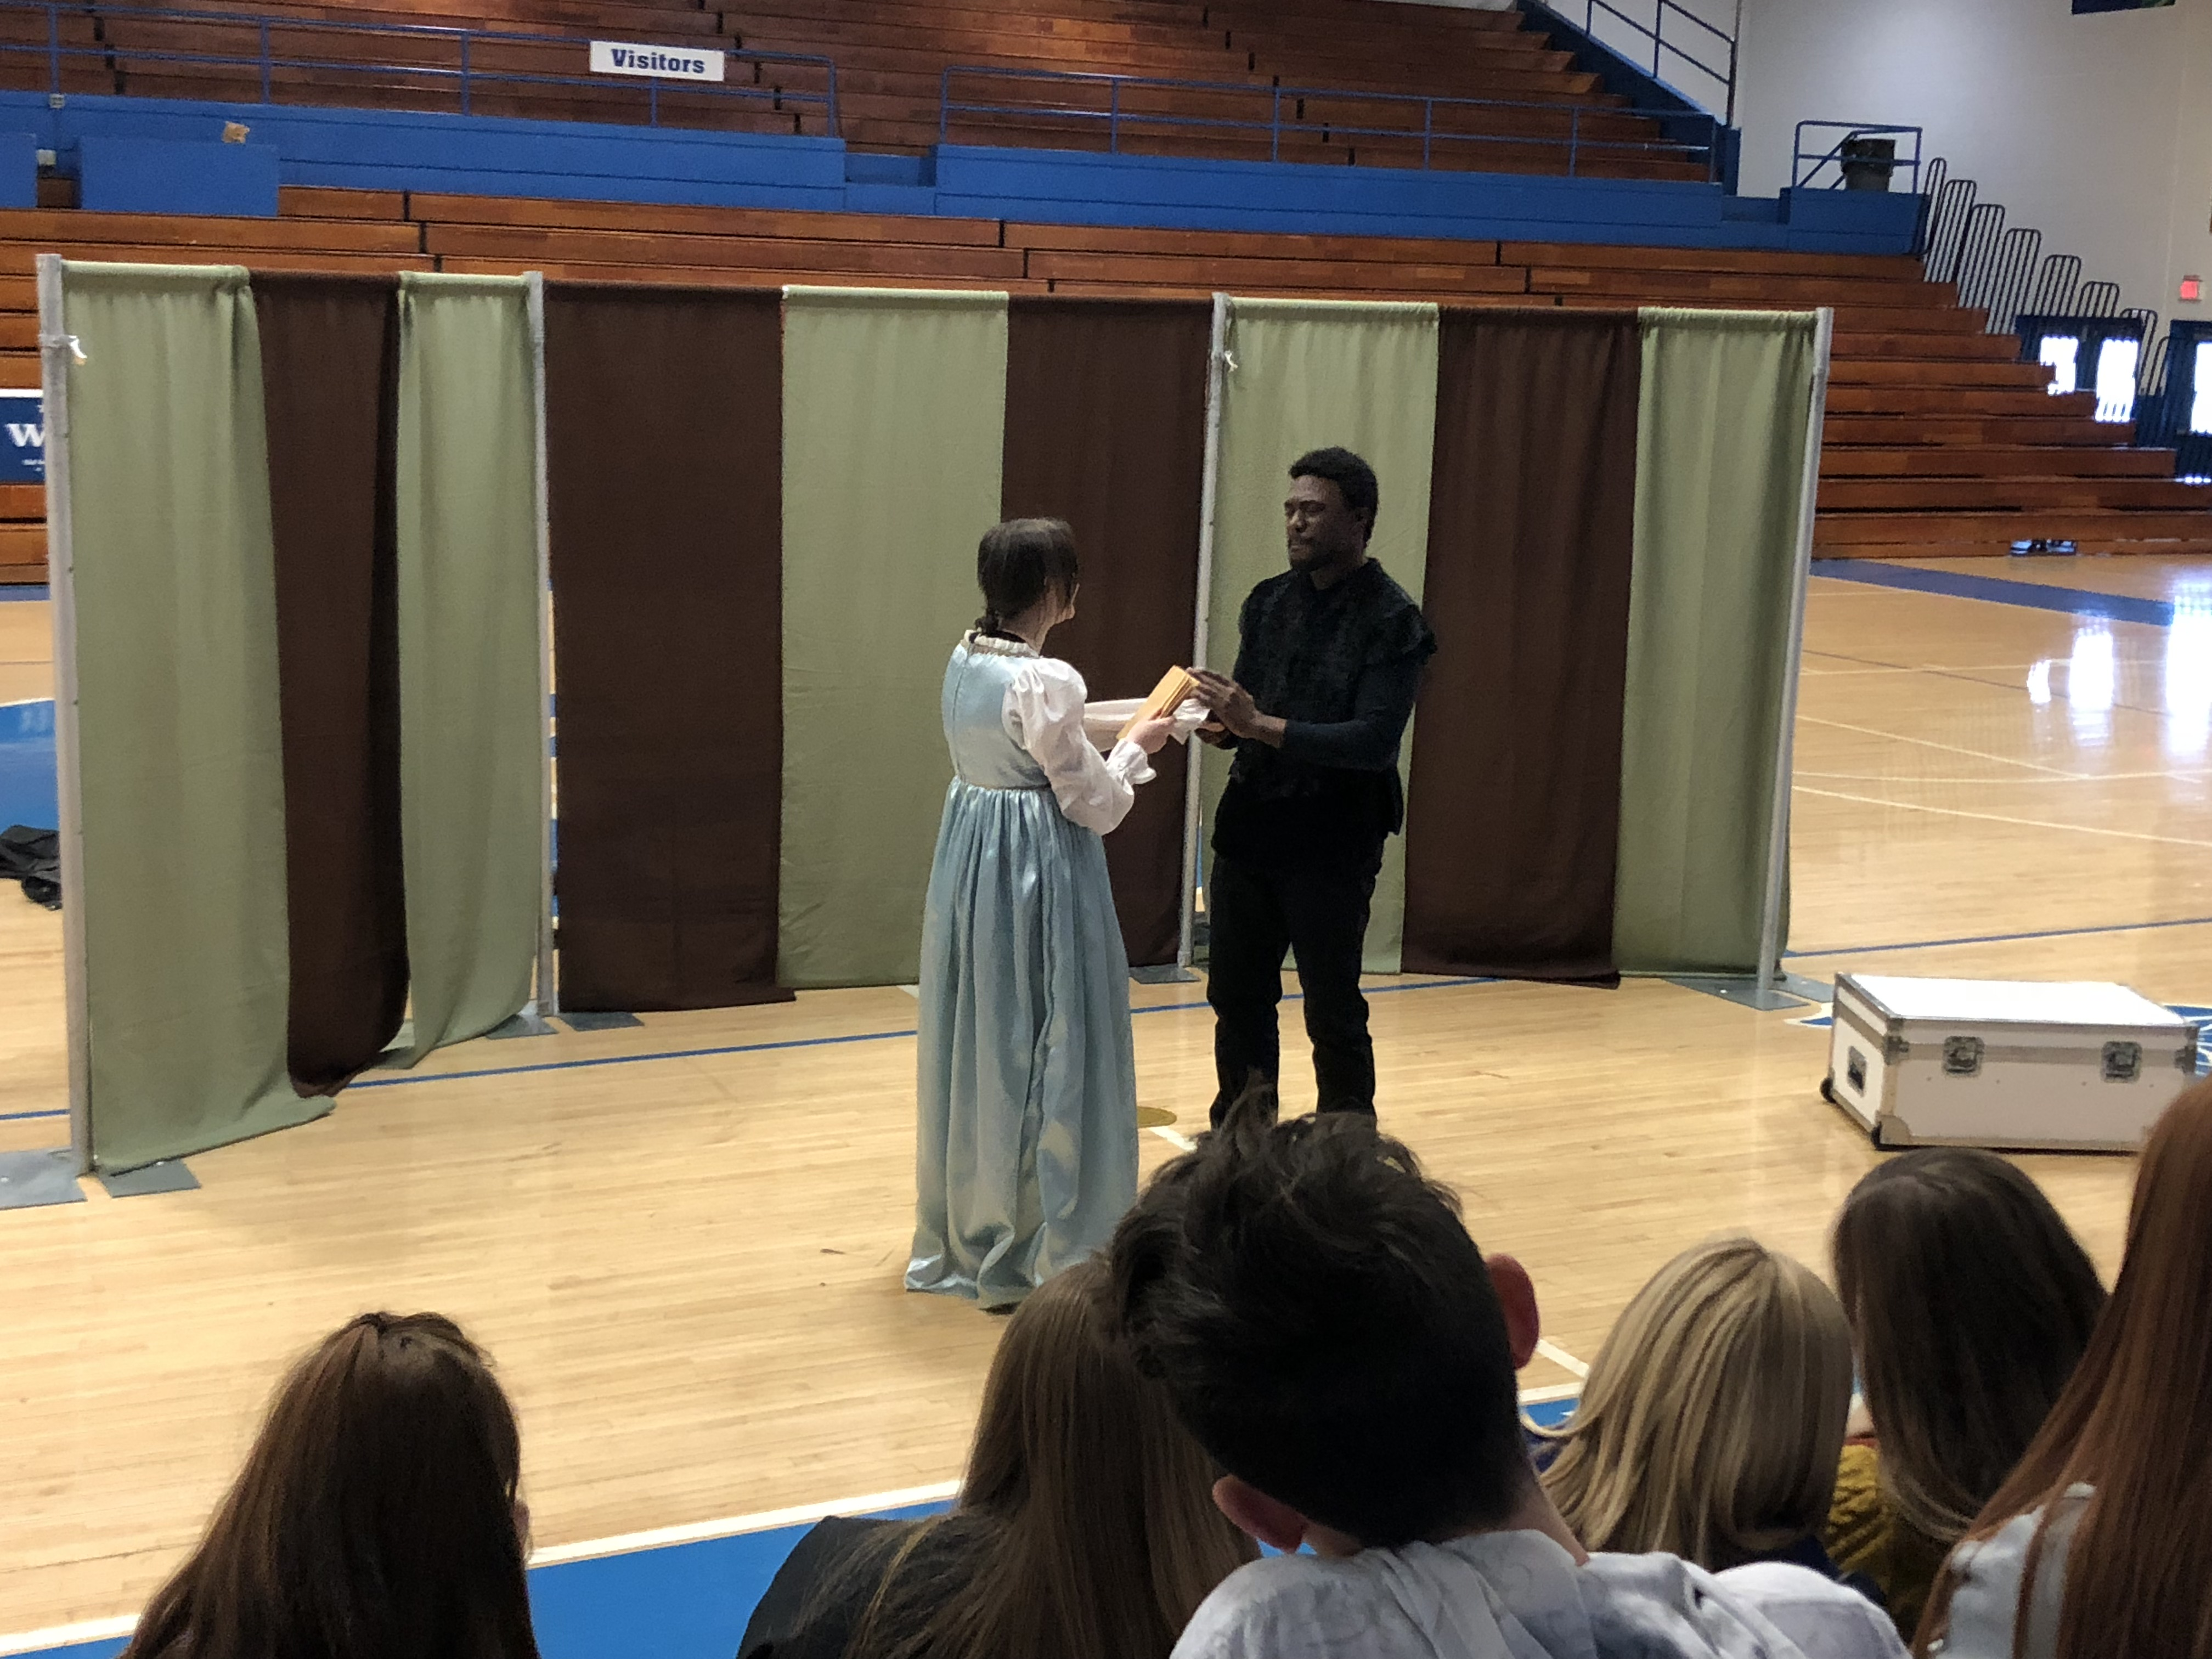 On Friday, December 8, 2017, Gifted & Talented students at AES, CCMS, and CCHS participated in workshops with Kentucky Shakespeare.